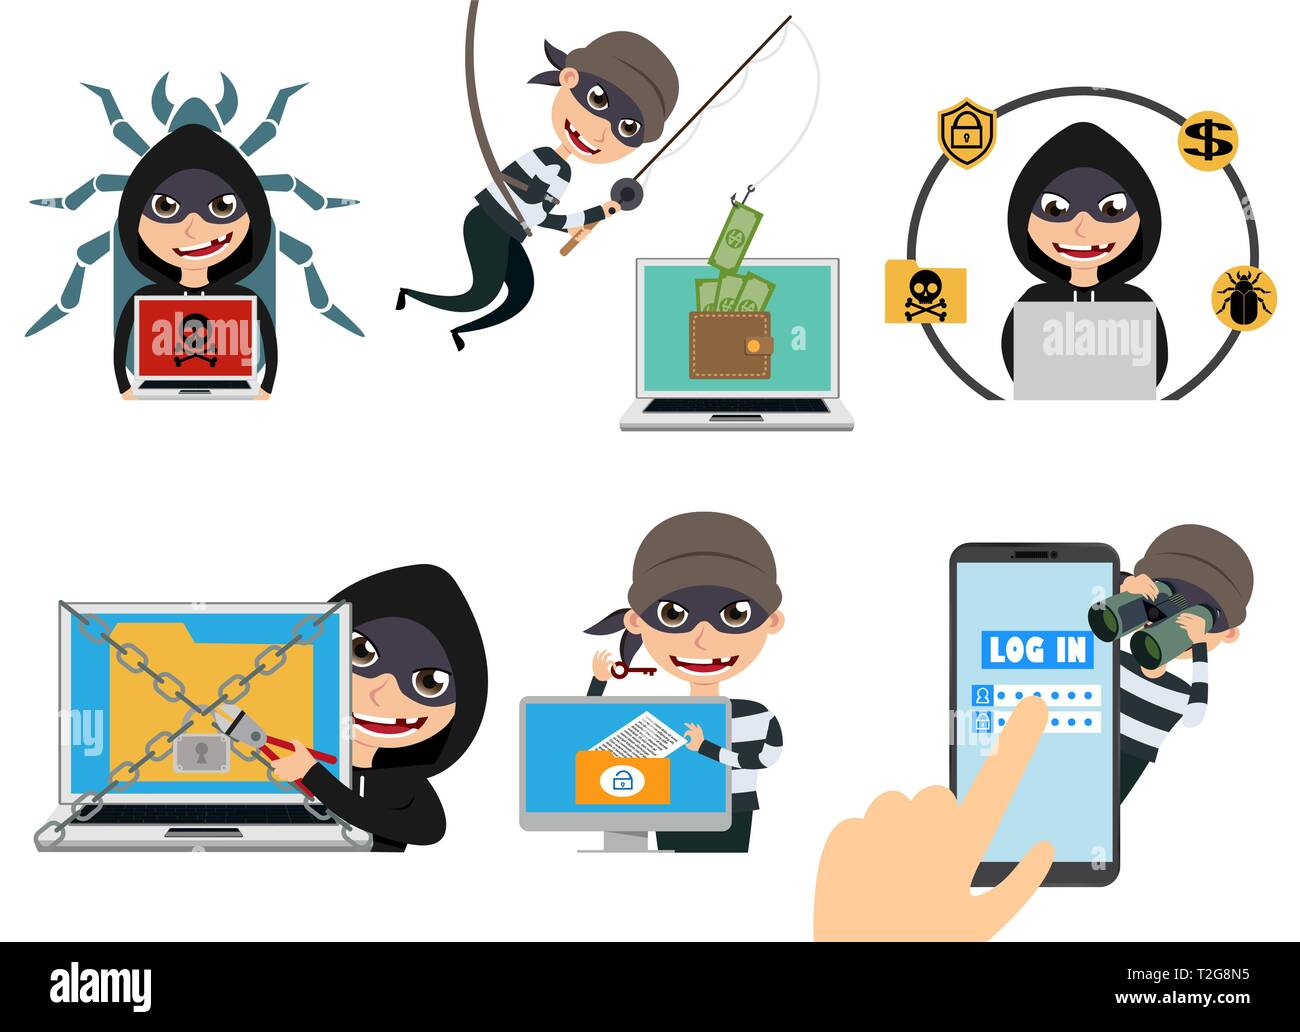 cyber security hacker vector character set thief hacking computer stealing online password and login information vector illustration stock vector image art alamy https www alamy com cyber security hacker vector character set thief hacking computer stealing online password and login information vector illustration image242532561 html